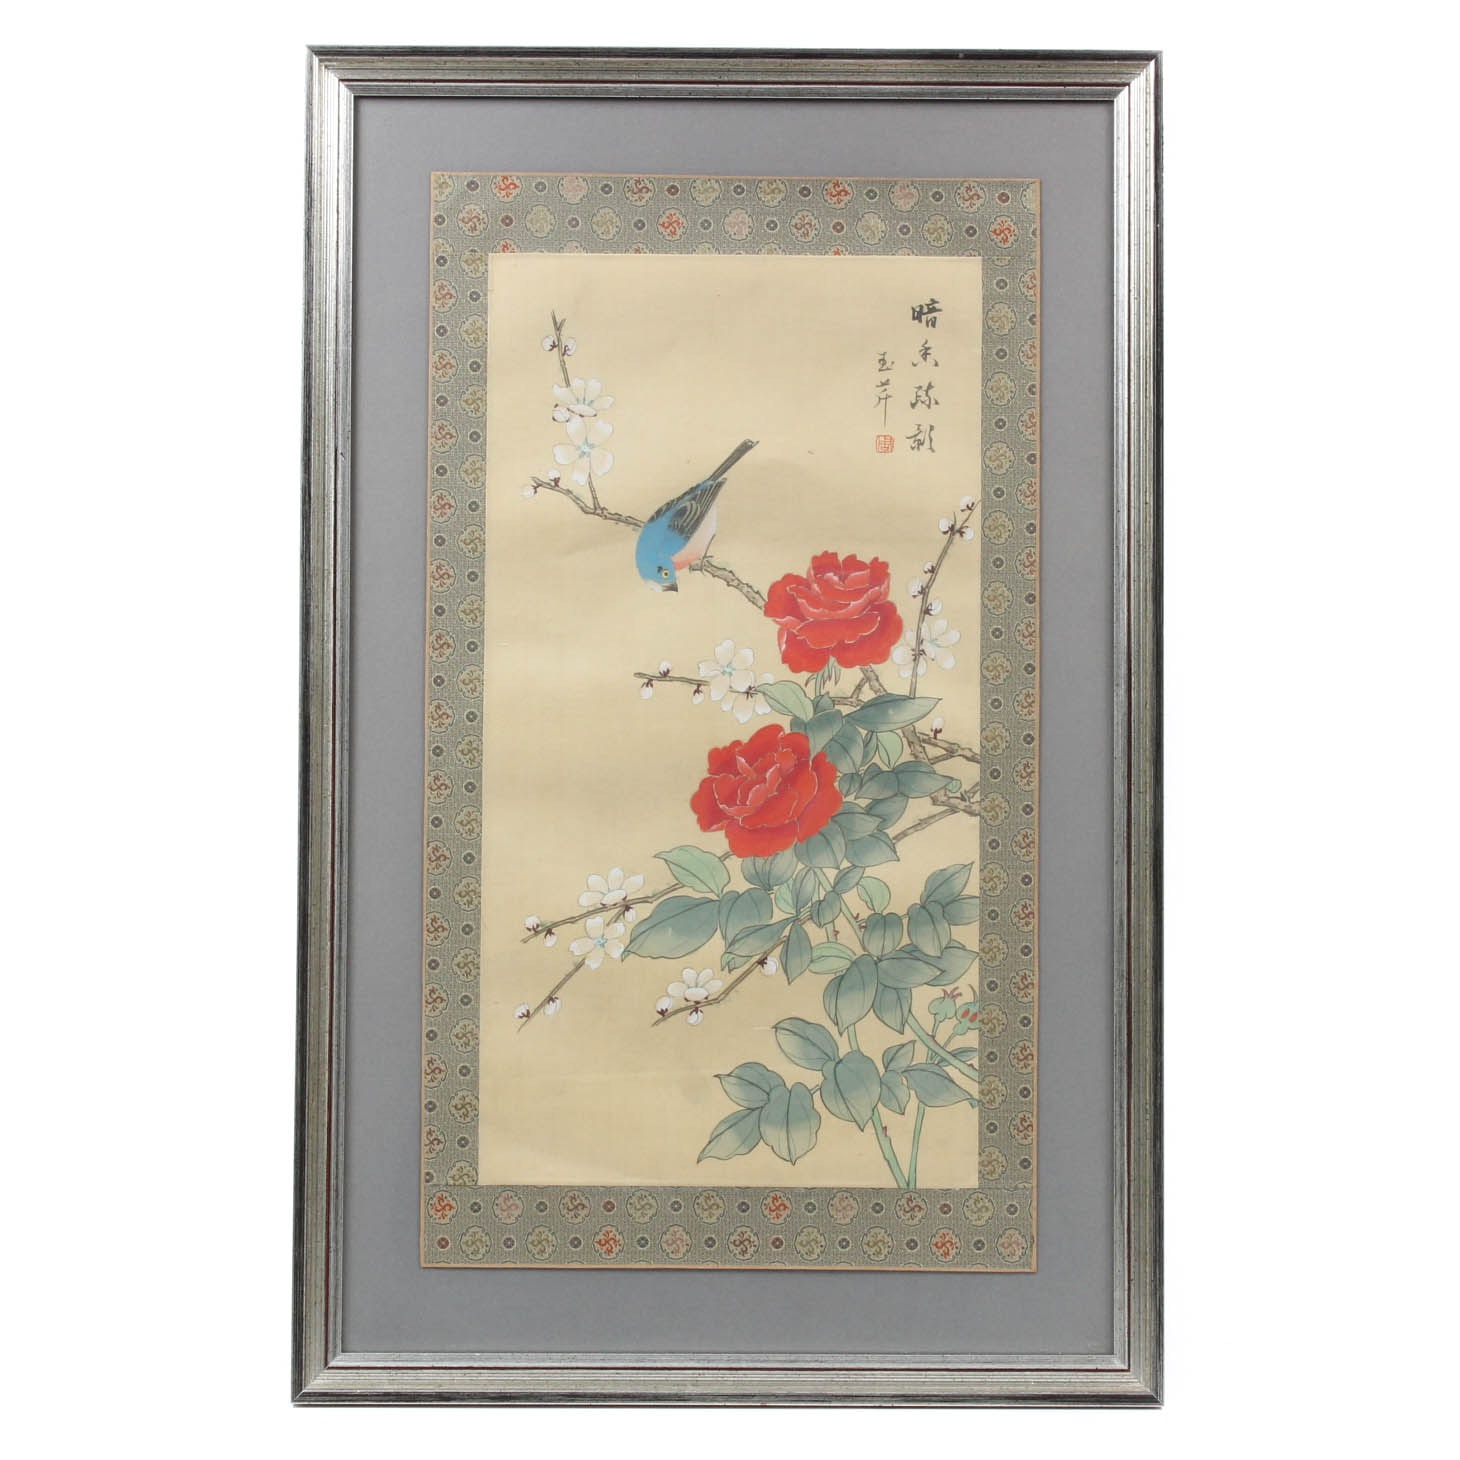 Chinese Watercolor on Silk of Bird With Flowers